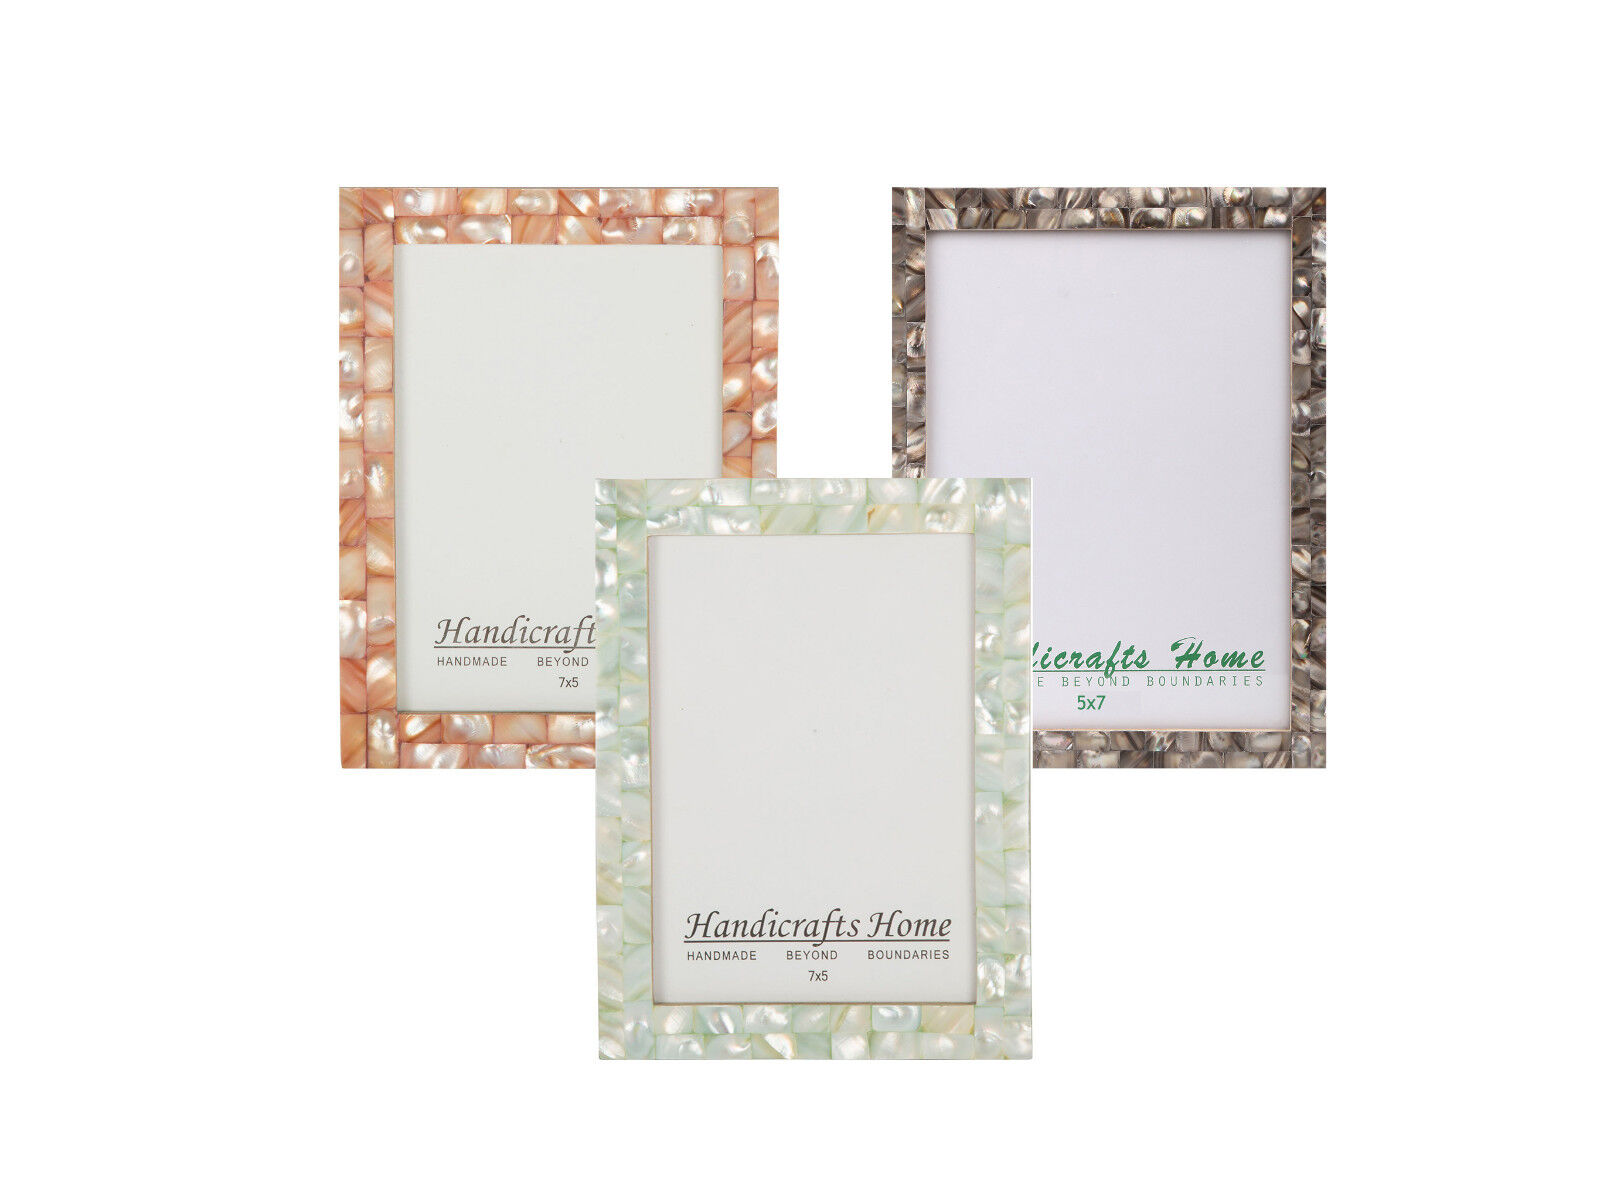 5x7 Picture Frames Chic Photo Frame Mother of Pearl Handmade